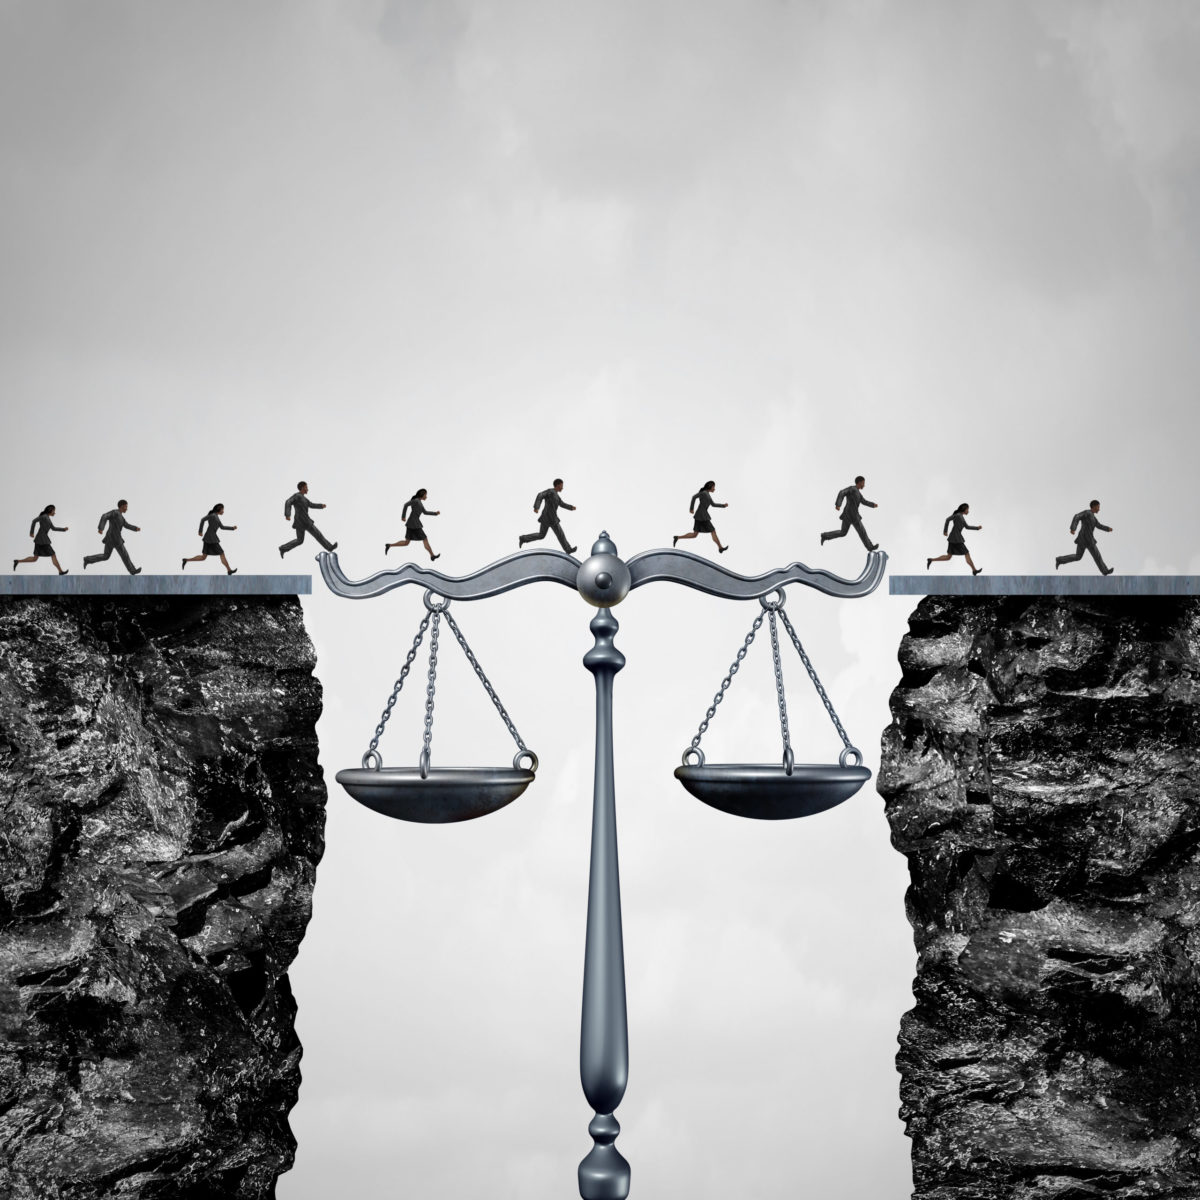 group of lawyers or corporate businessmen and businesswomen crossing two cliffs with the help of a justice scale acting as a bridge to legal services